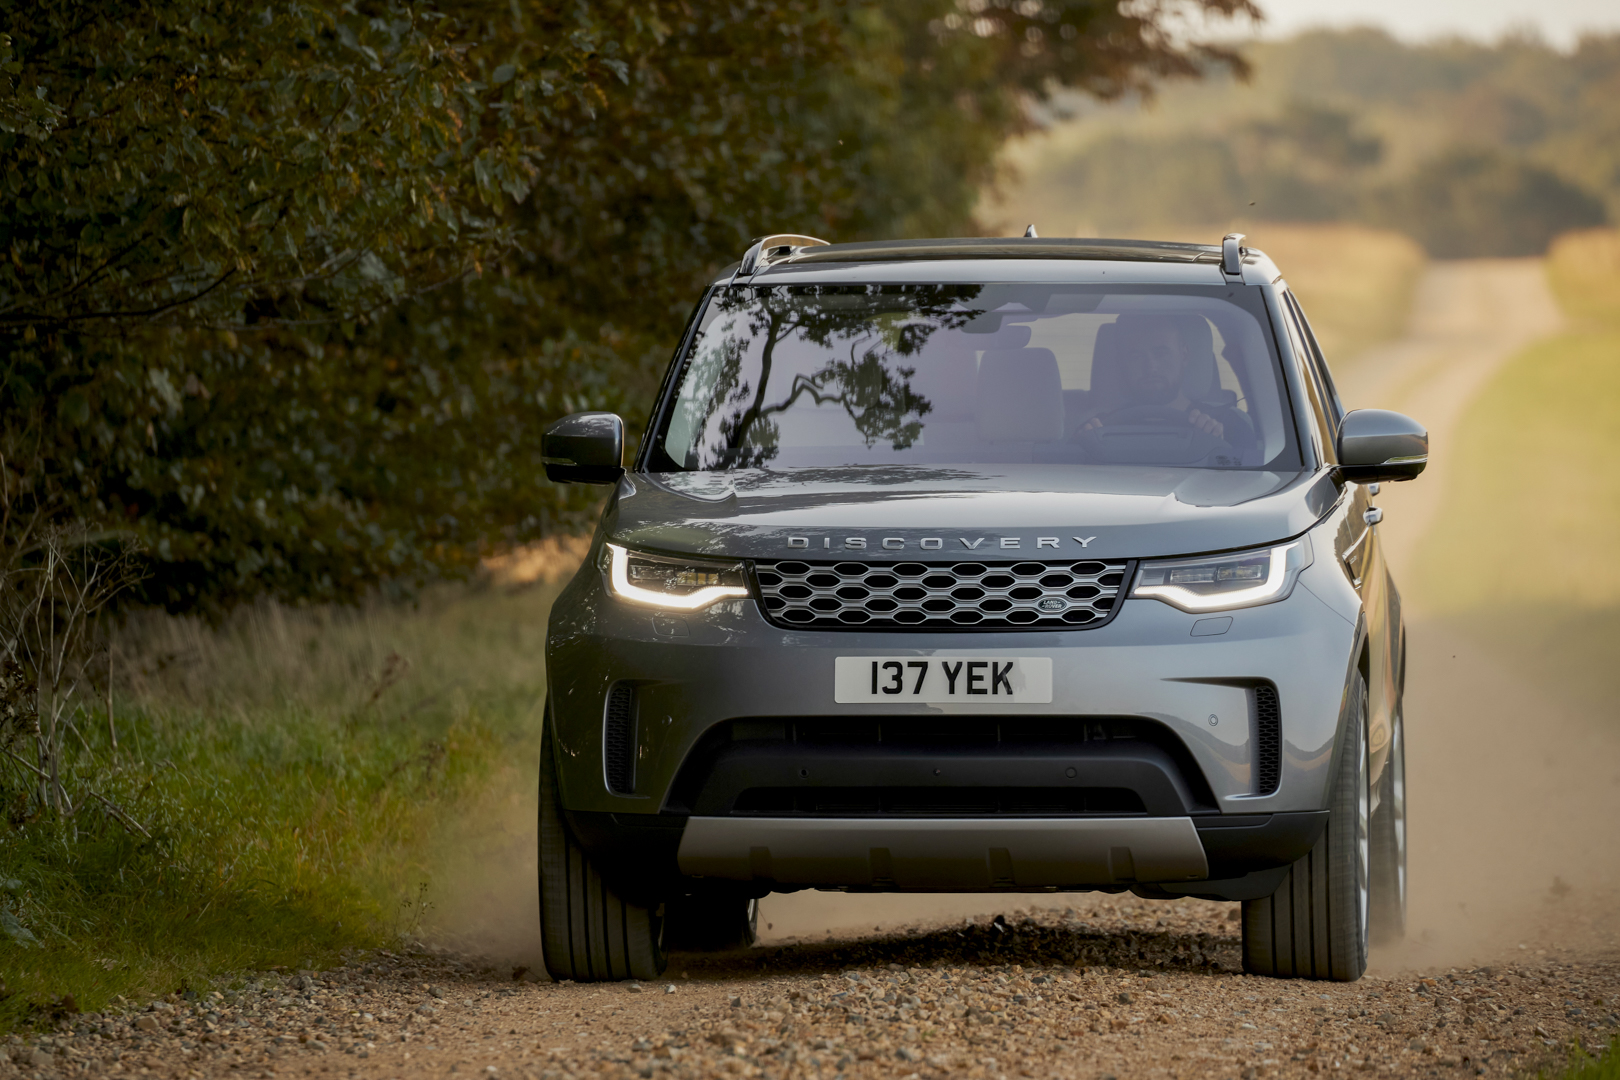 New Land Rover Discovery is the ultimate, versatile seven-seat premium SUV